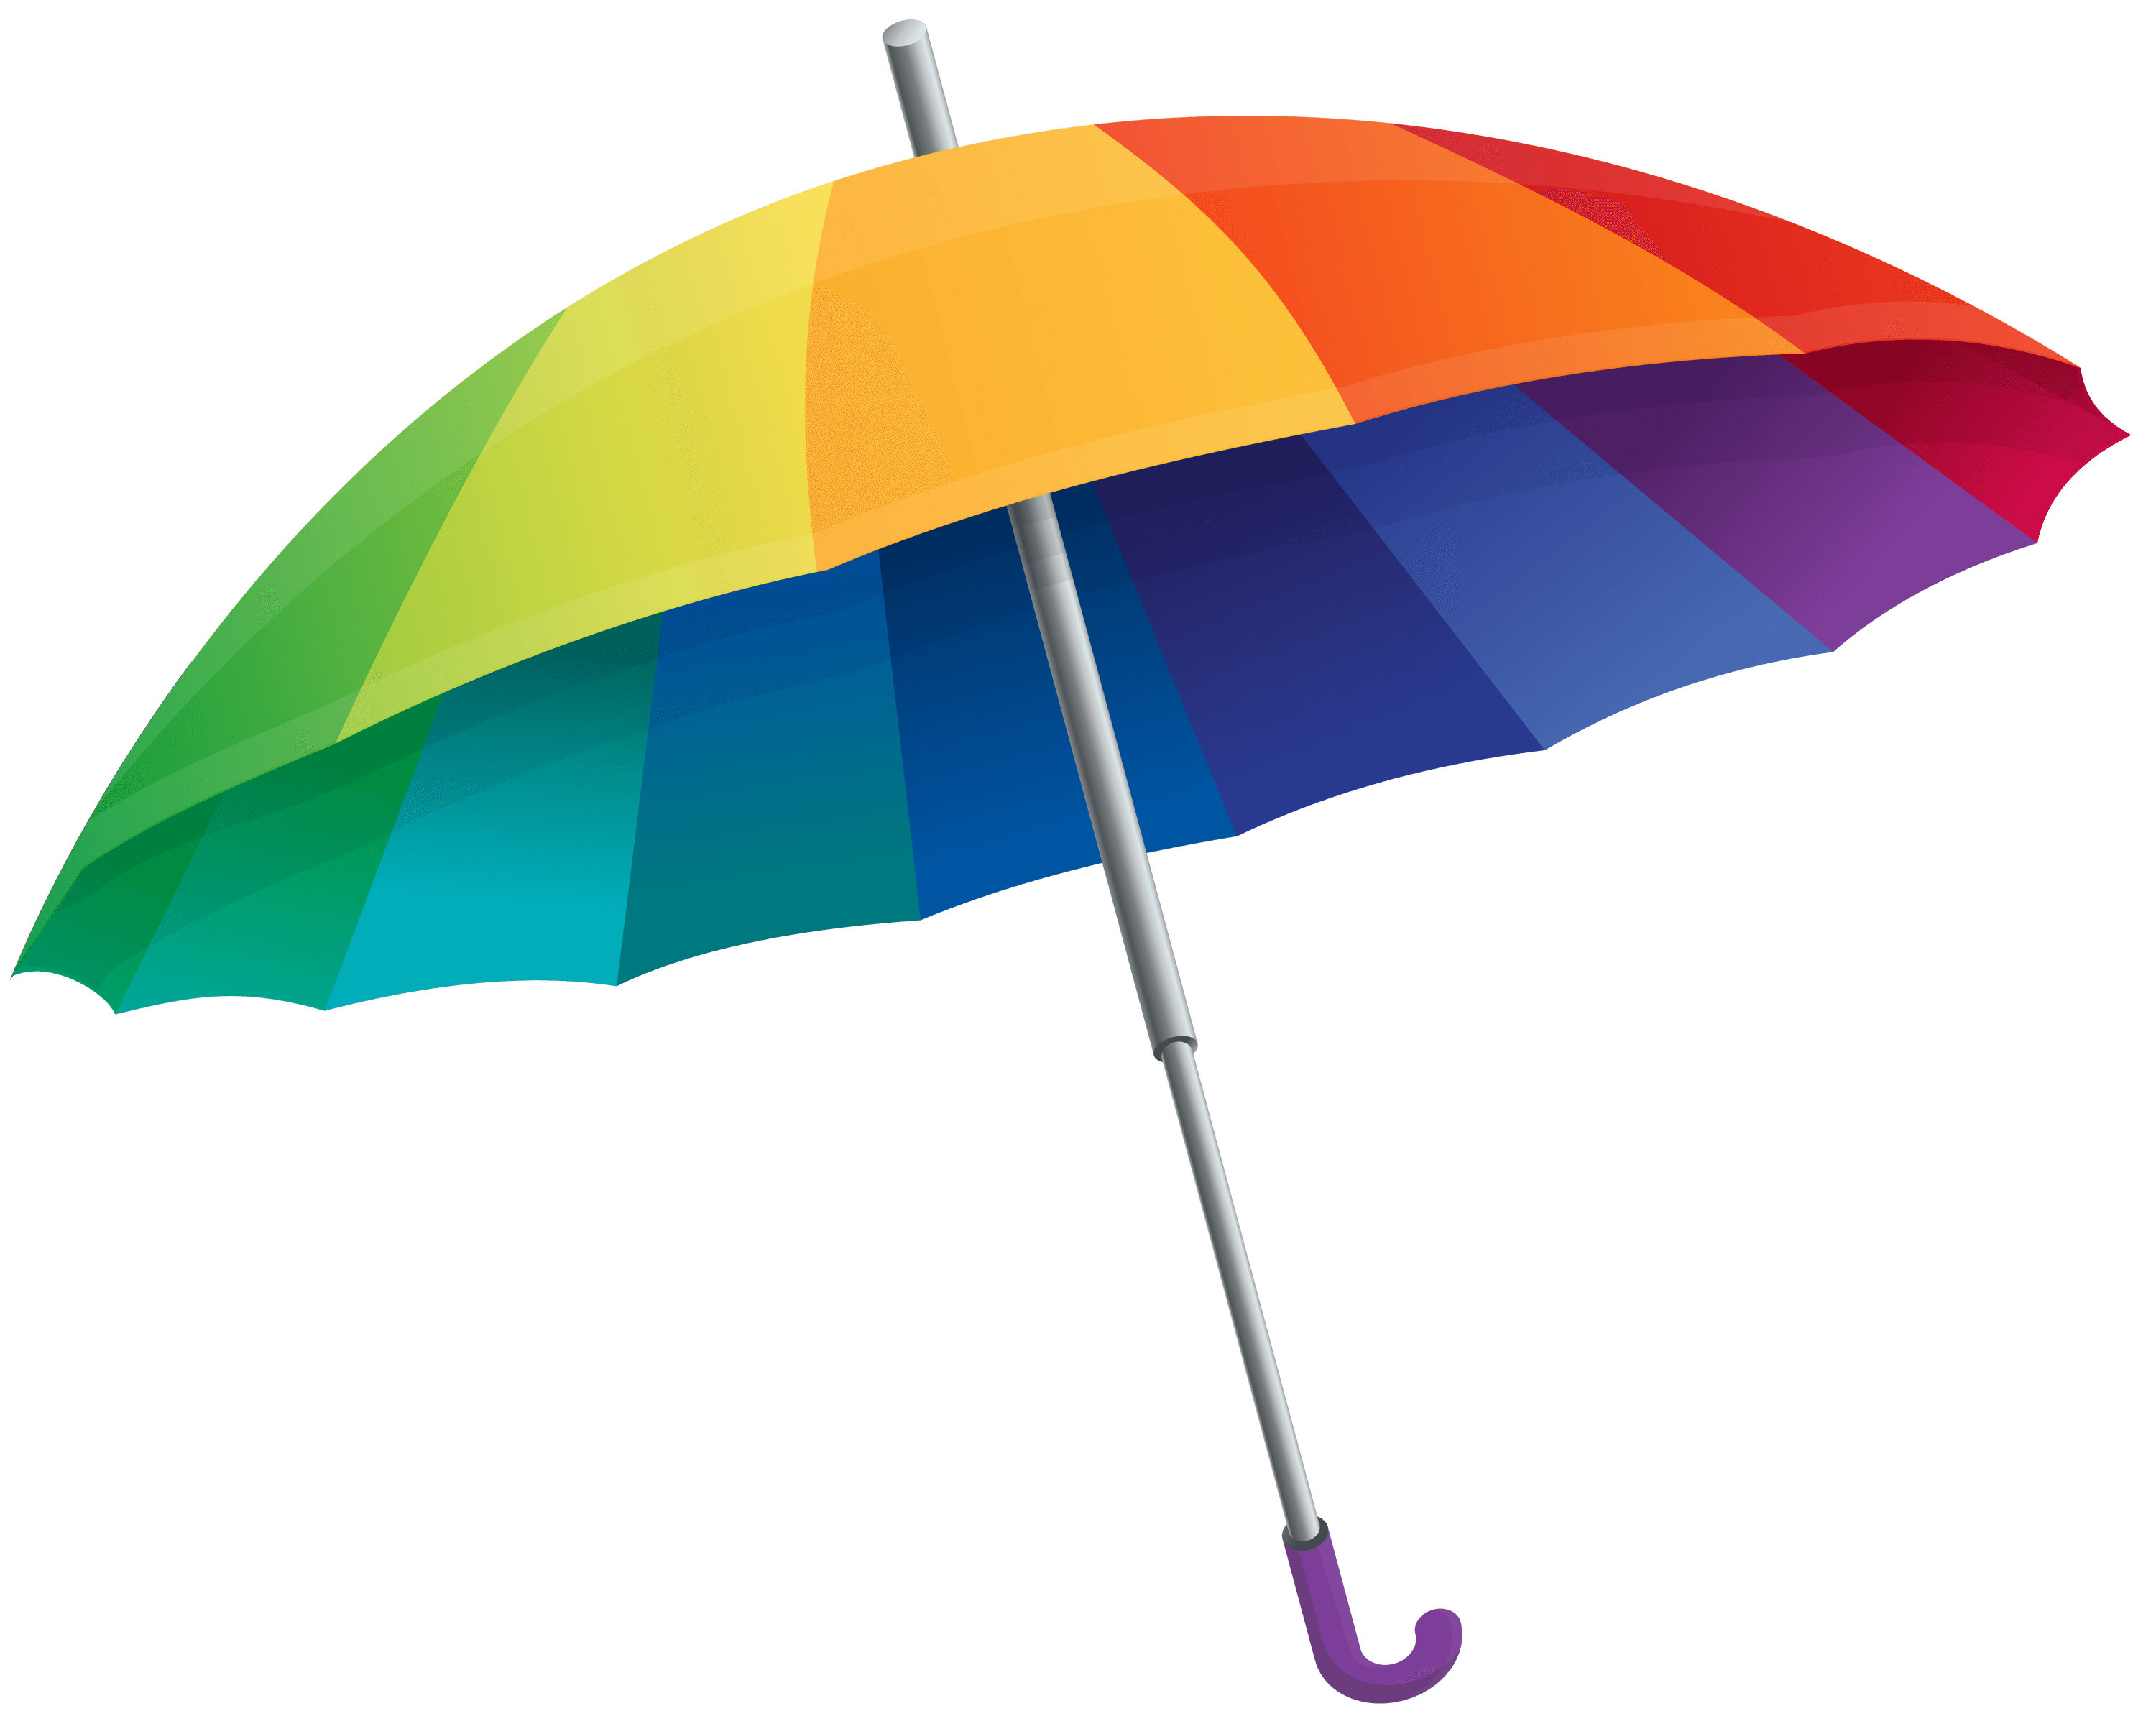 Umbrella PNG Transparent Imag